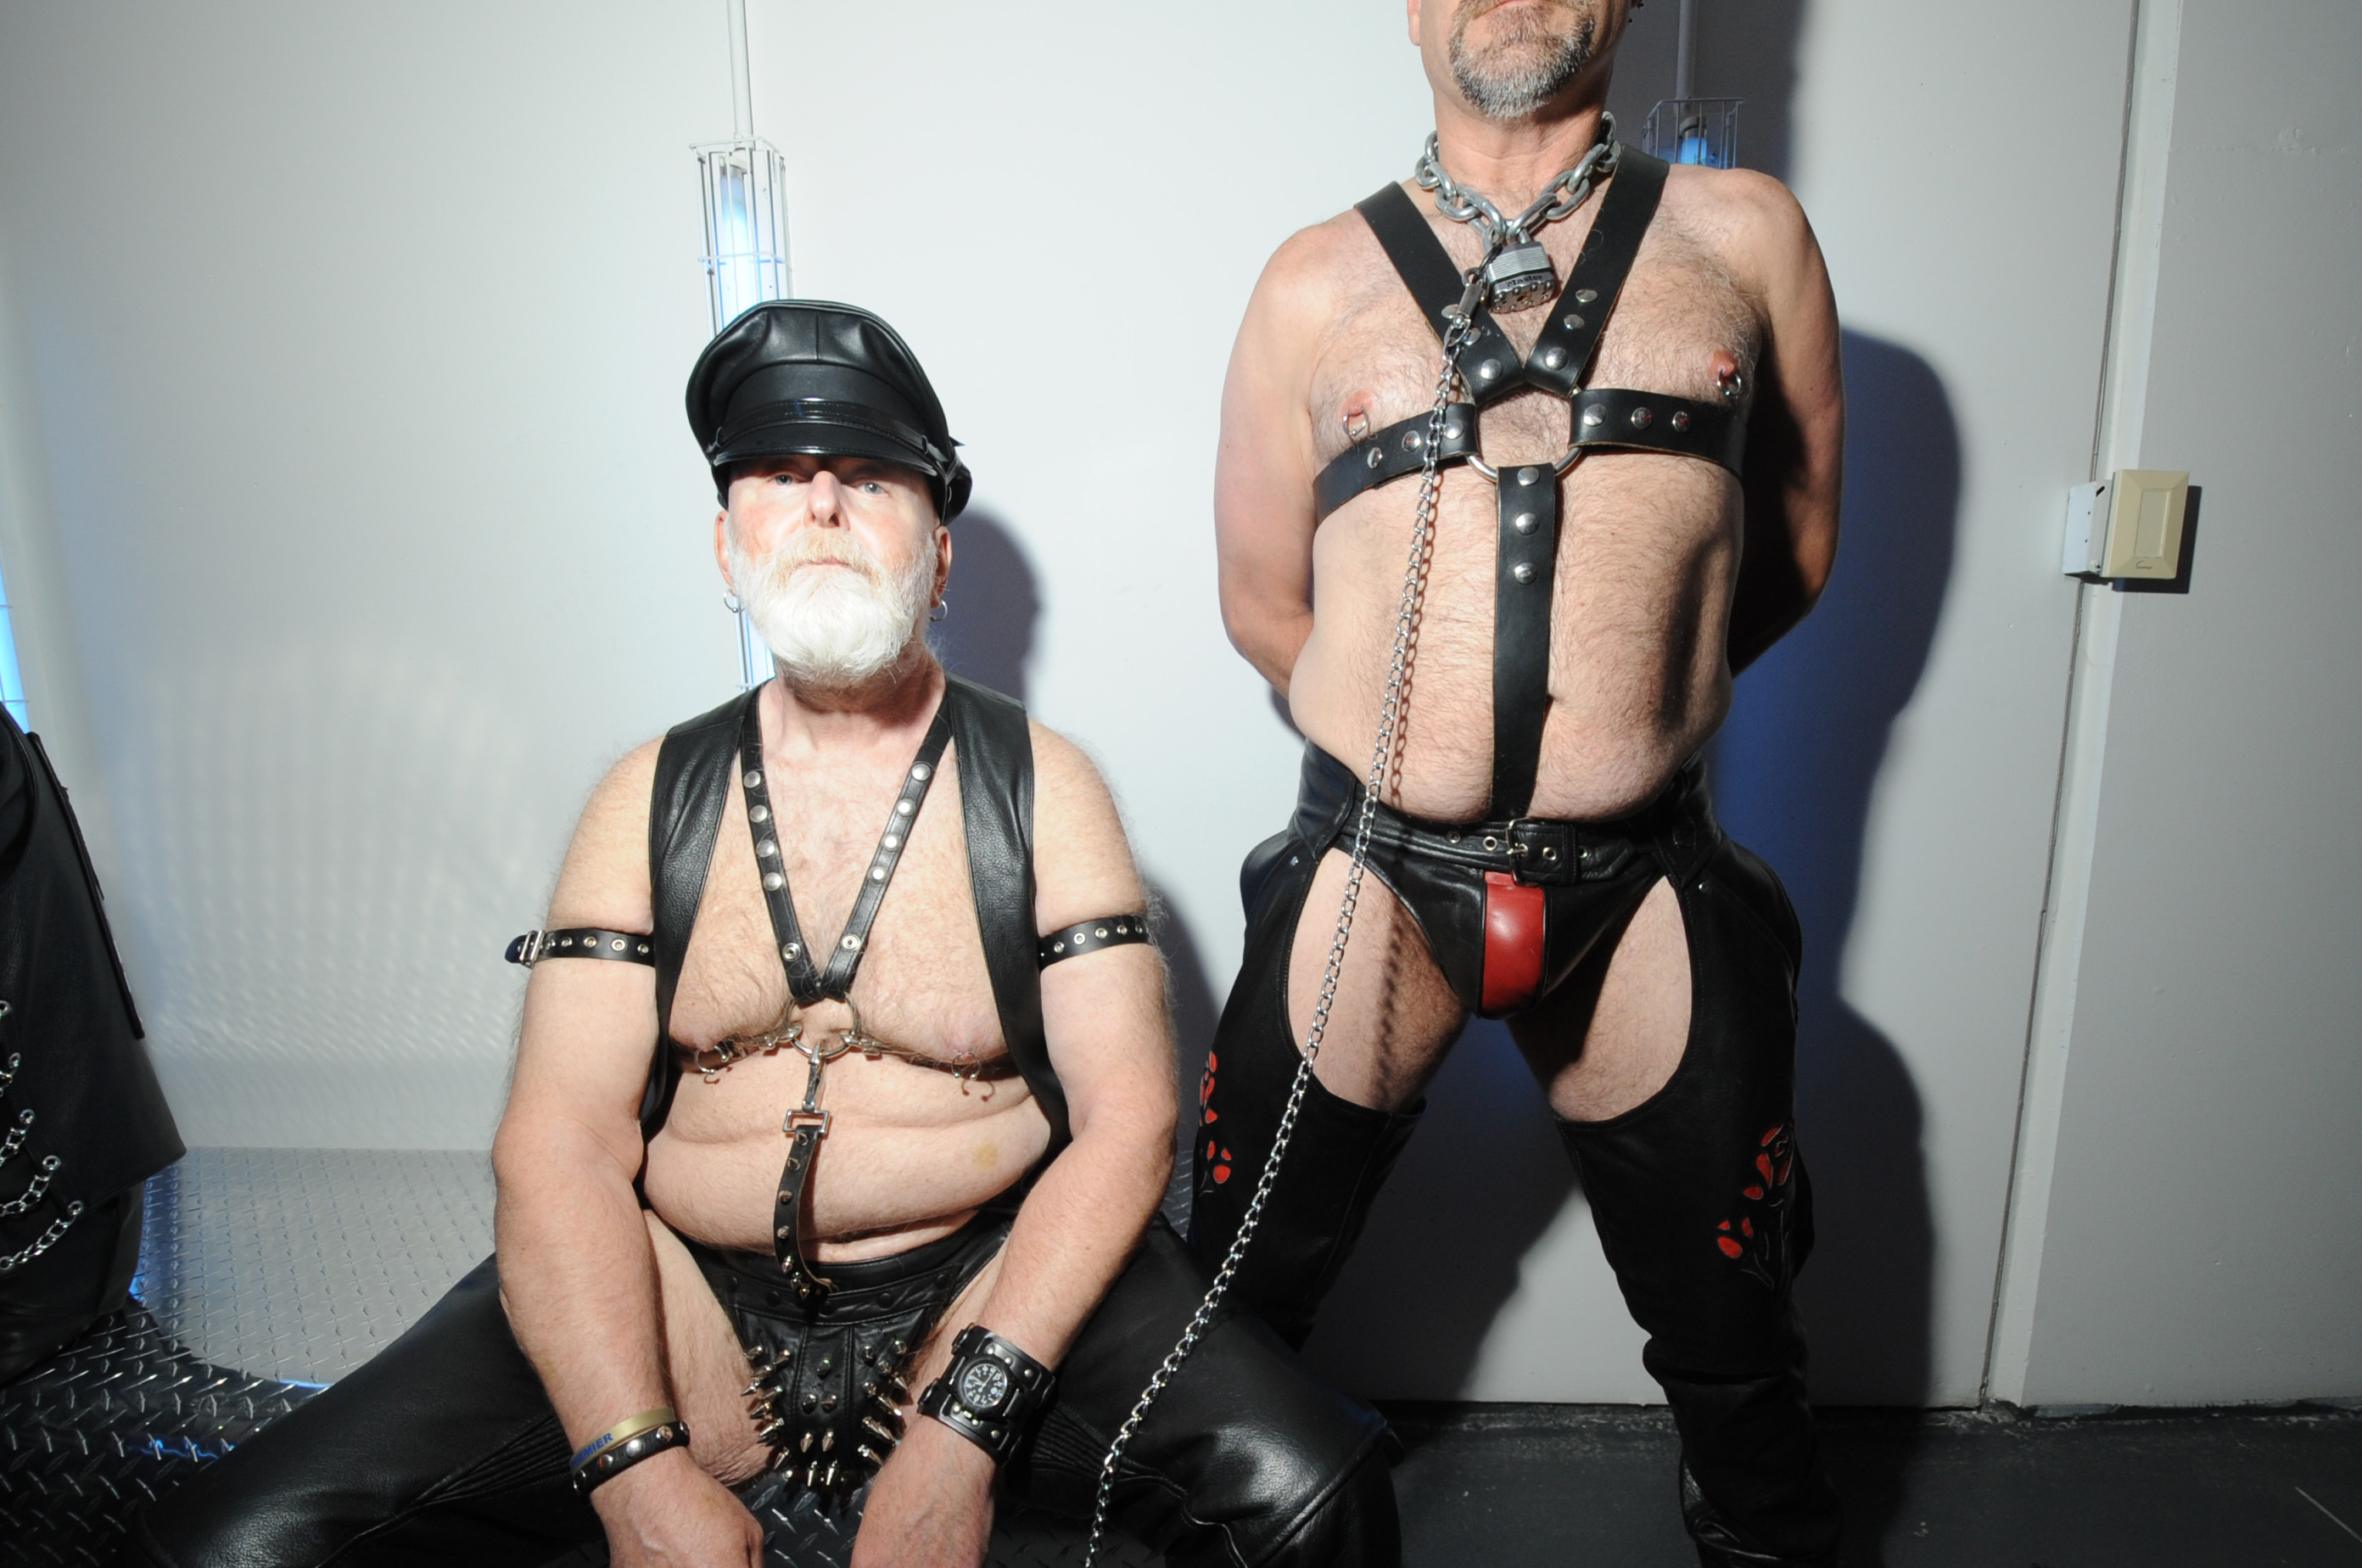 Straps and chaps are on display during International Mr. Leather Contest on May 24, 2015.